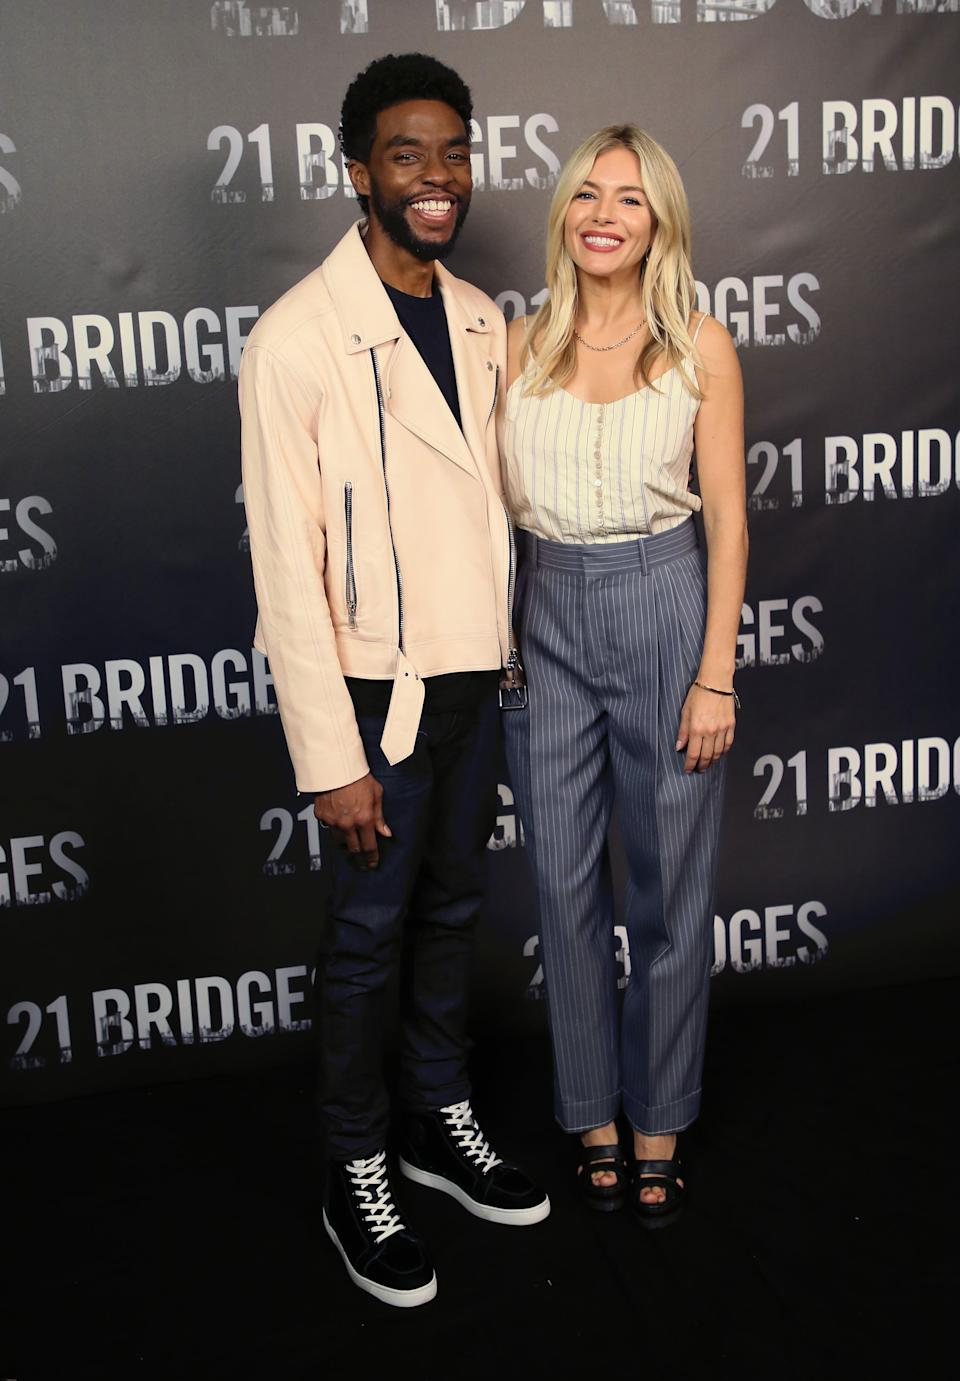 LOS ANGELES, CALIFORNIA - NOVEMBER 09: Chadwick Boseman and Sienna Miller attend a photocall for STX Entertainment's